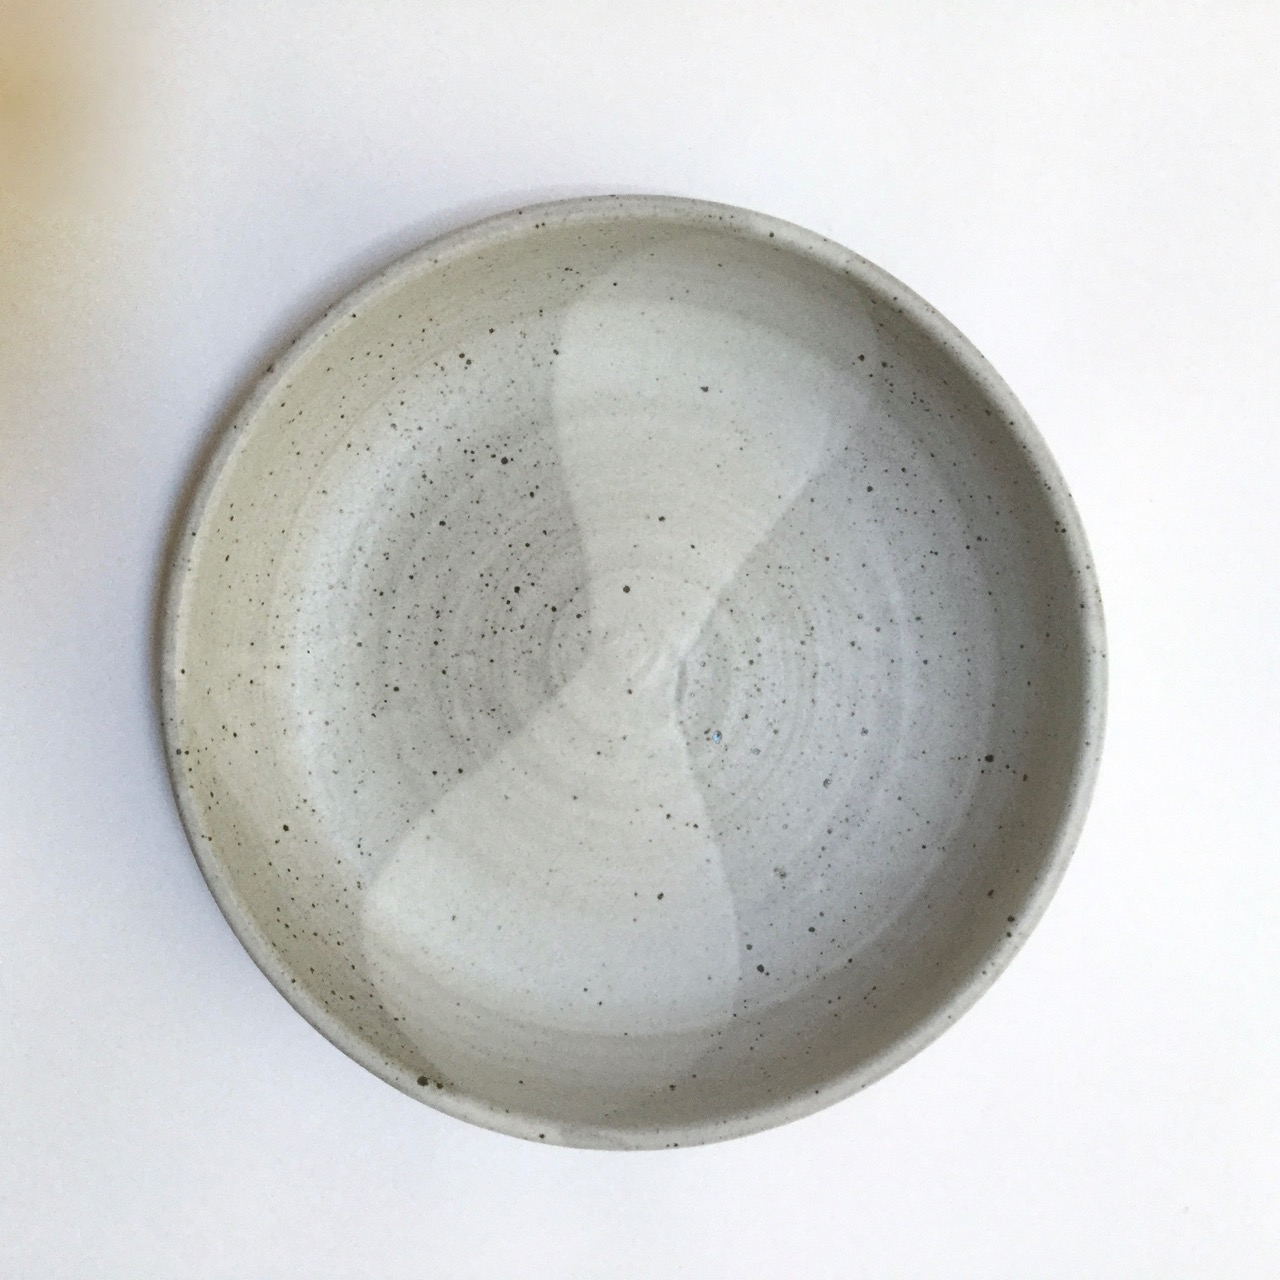 1115 Serving bowl top.jpg